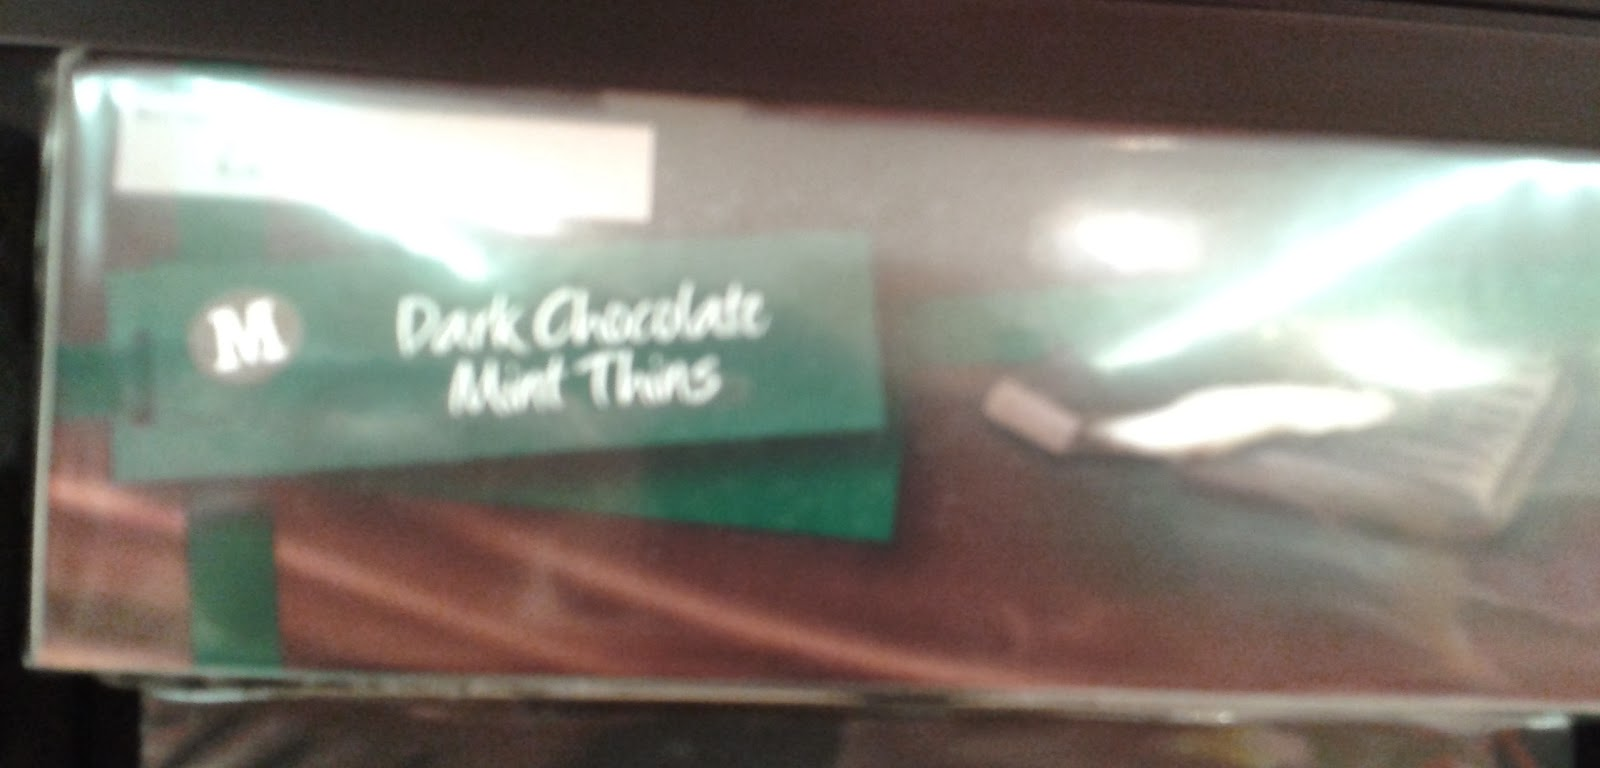 Morrisons mint thins and orange thins